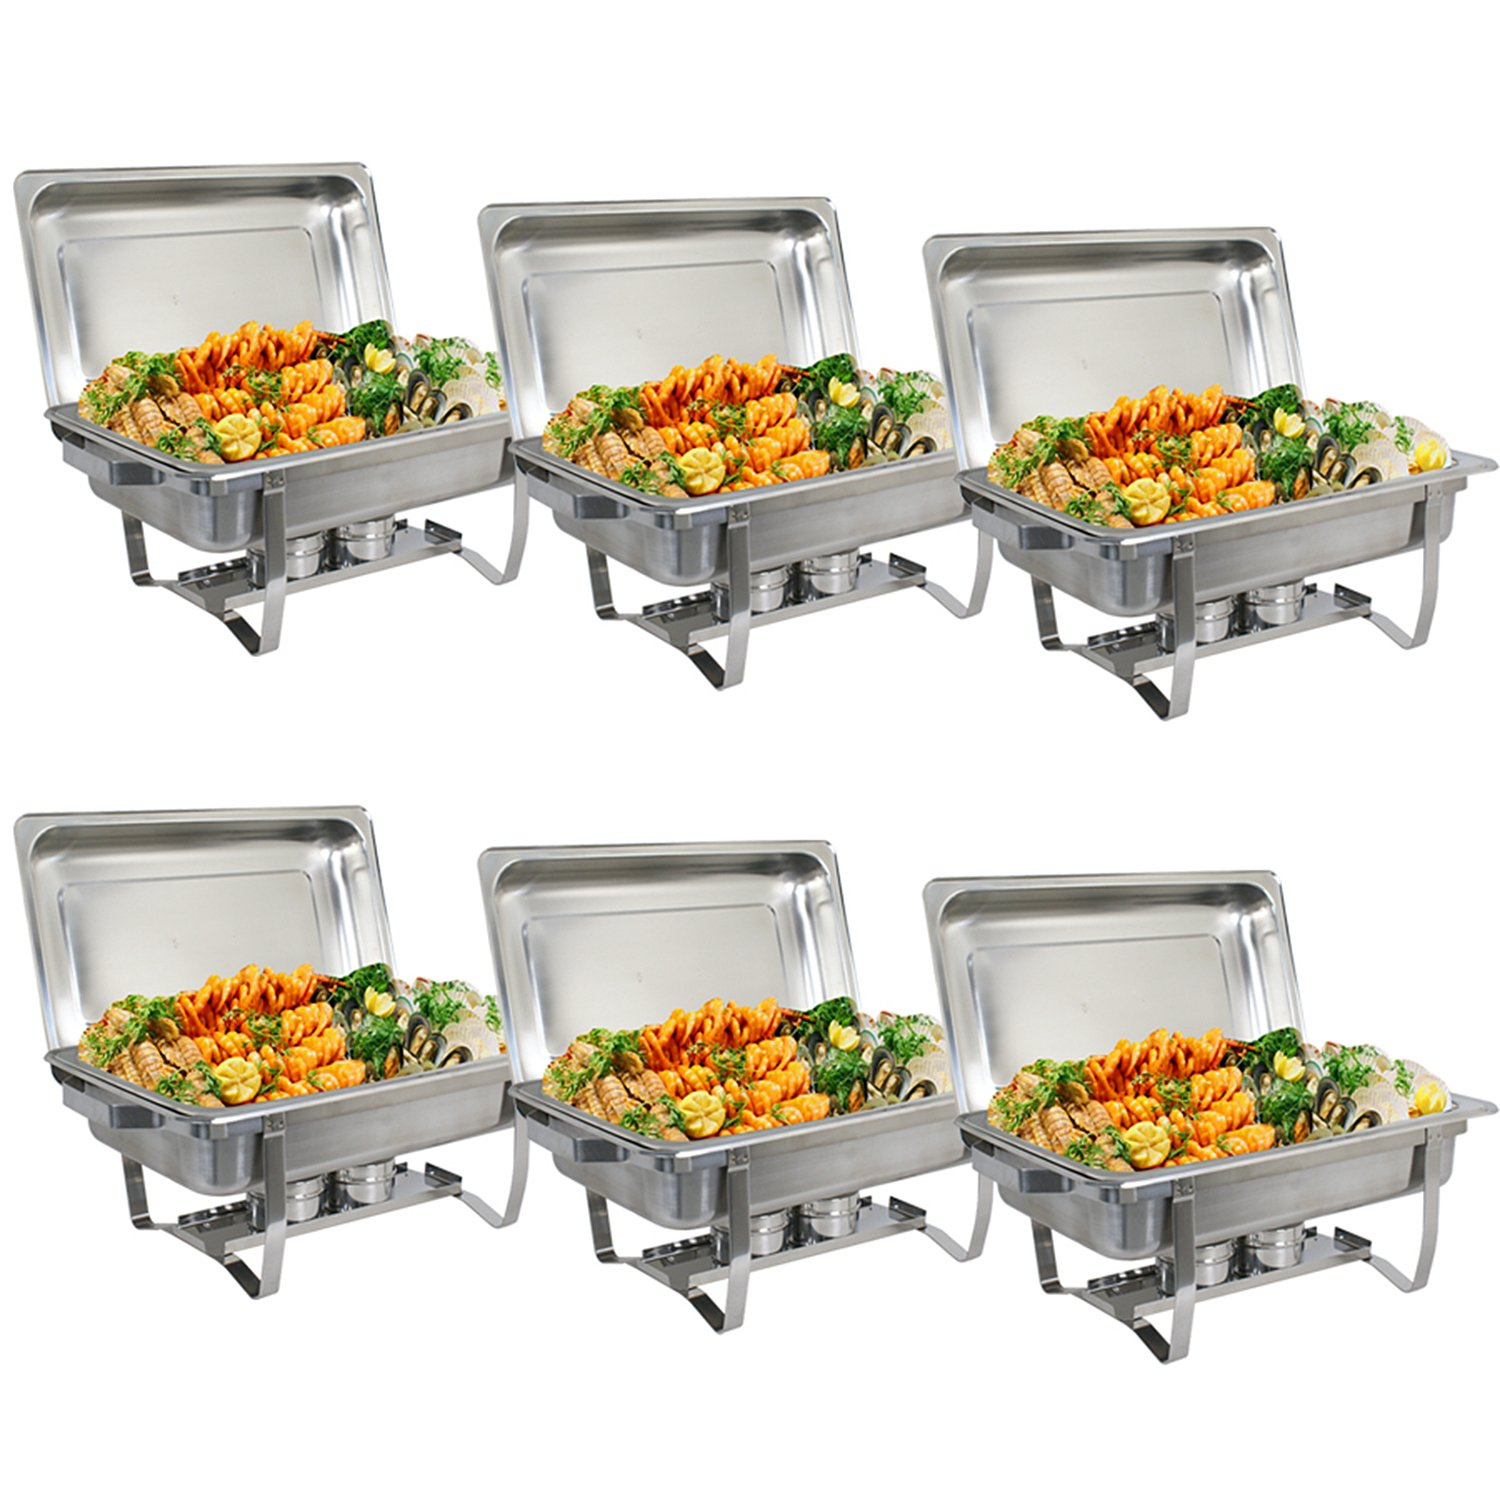 ZenChef Upgraded 8 Qt Stainless Steel Chafer, Full Size Chafer, Chafing Dish w/Water Pan, Food Pan, Alcohol Furnace and Lid (Pack of 6)